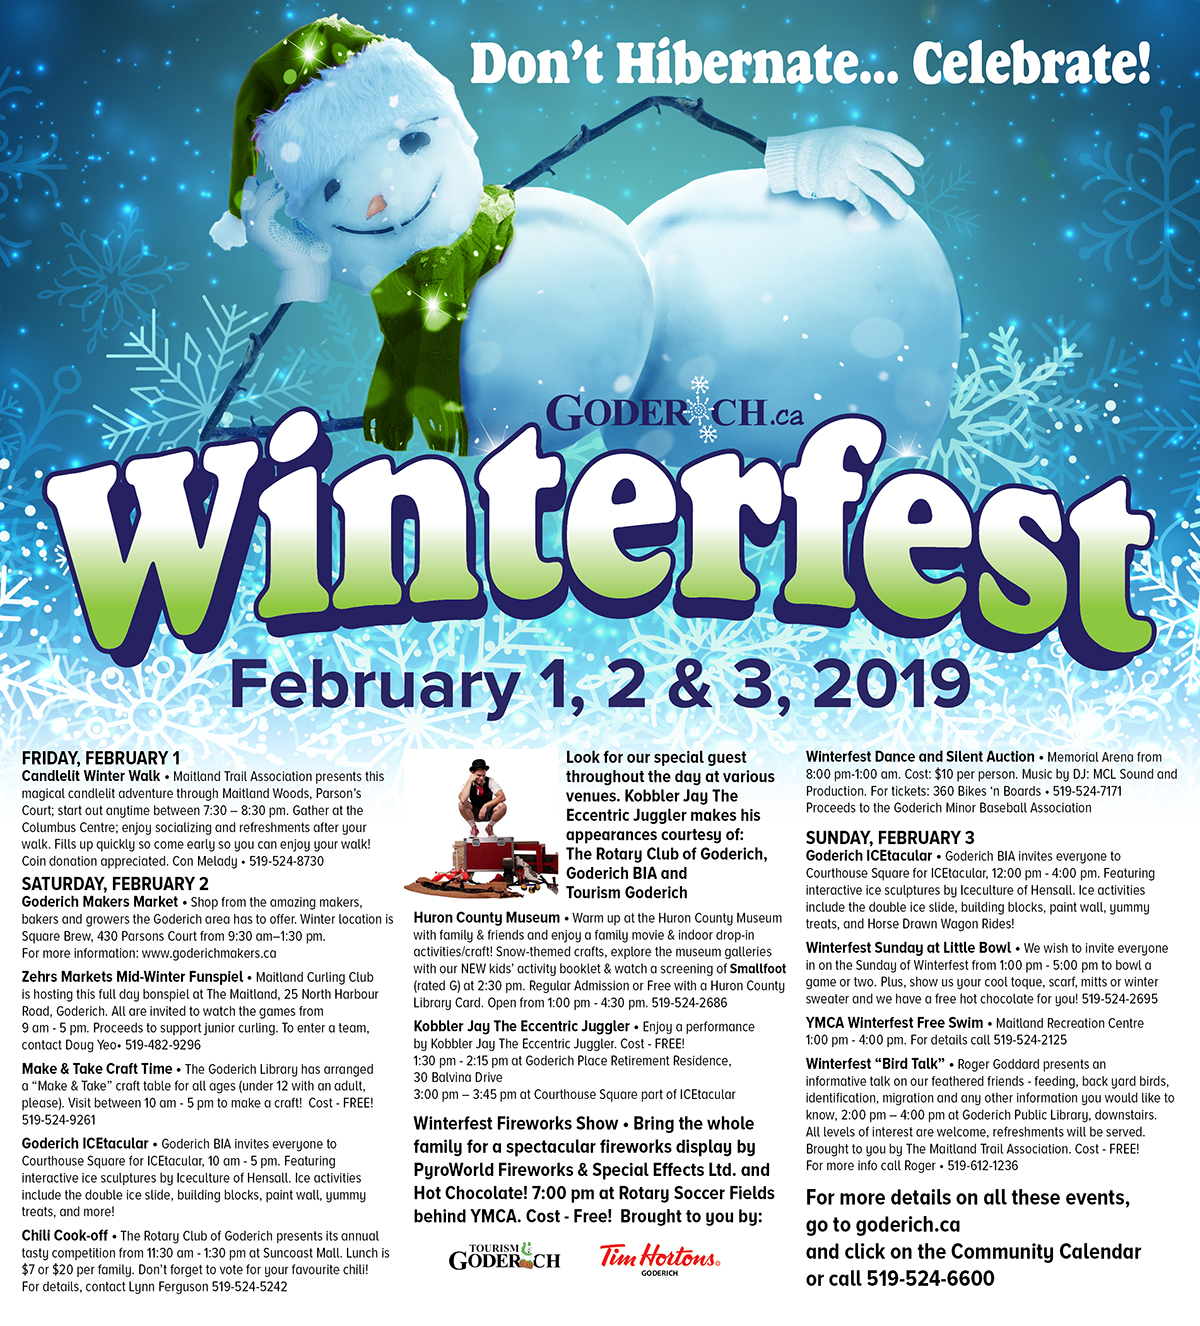 Winterfest 2019 List of Events